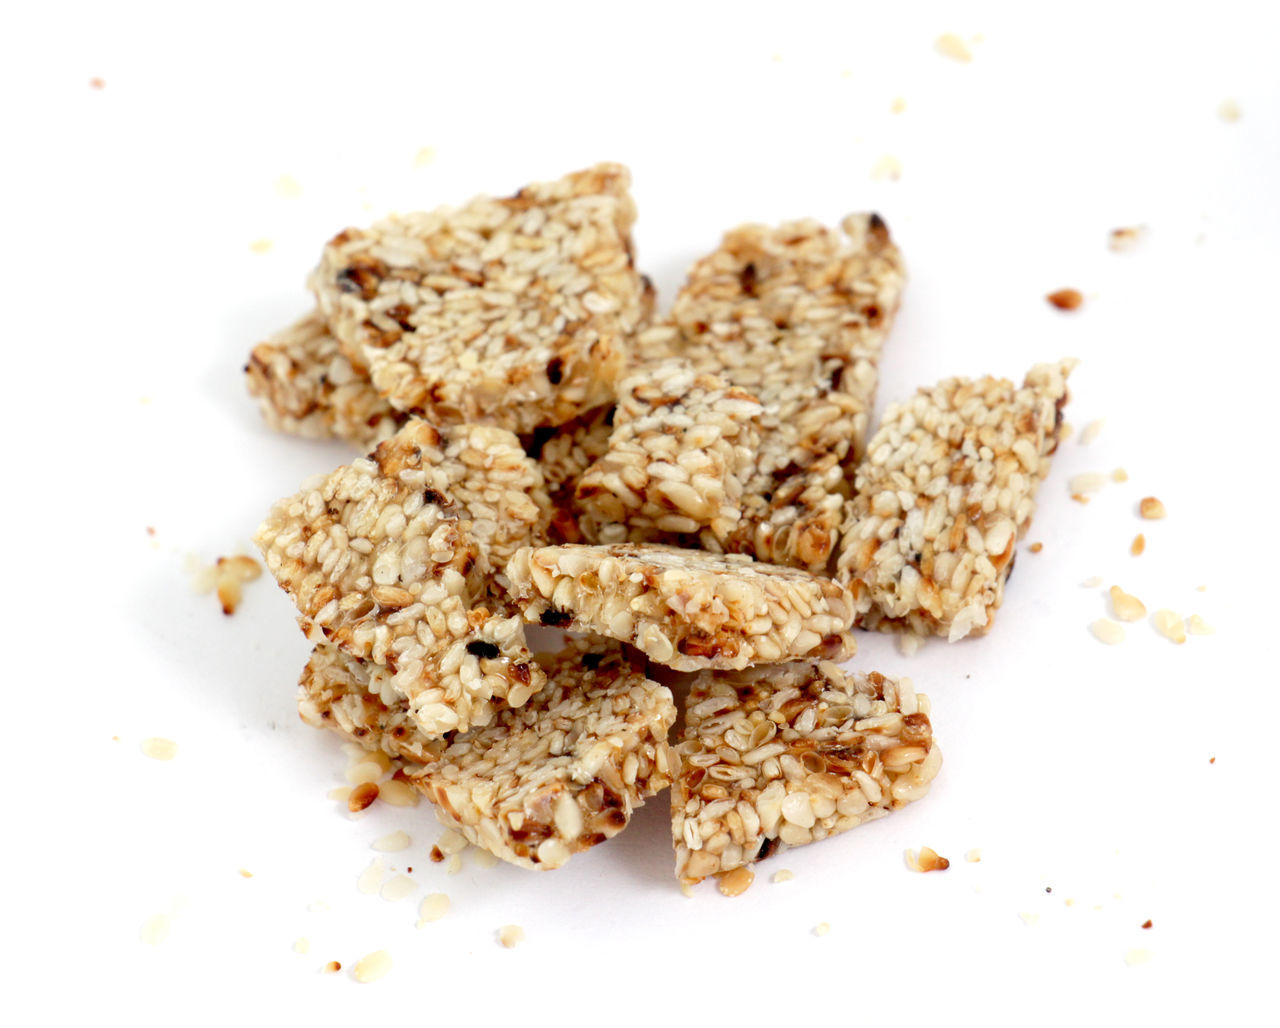 homemade sesame bar Bar Choped Leek Energy Food Food And Drink Healthy Eating Homemade Food No People Pieces Protein Bar Sesame Sesame Bar Sesame Seed Sweet Sweet Food White Background